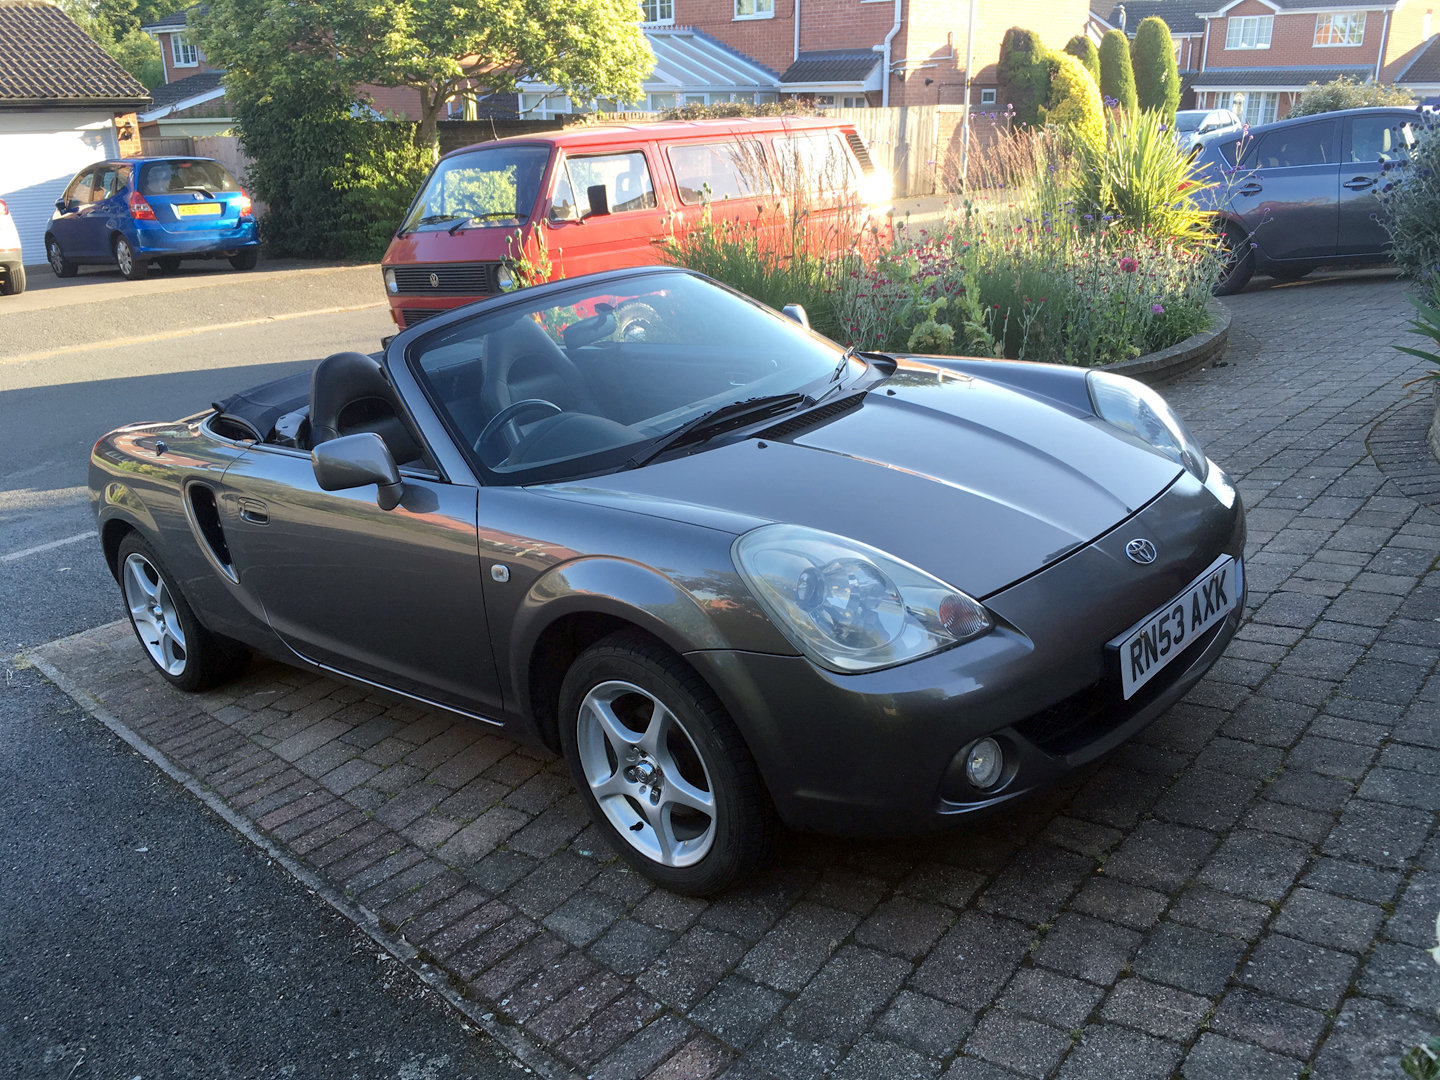 2004 Toyota MR2 mk3 facelift For Sale (picture 1 of 5)